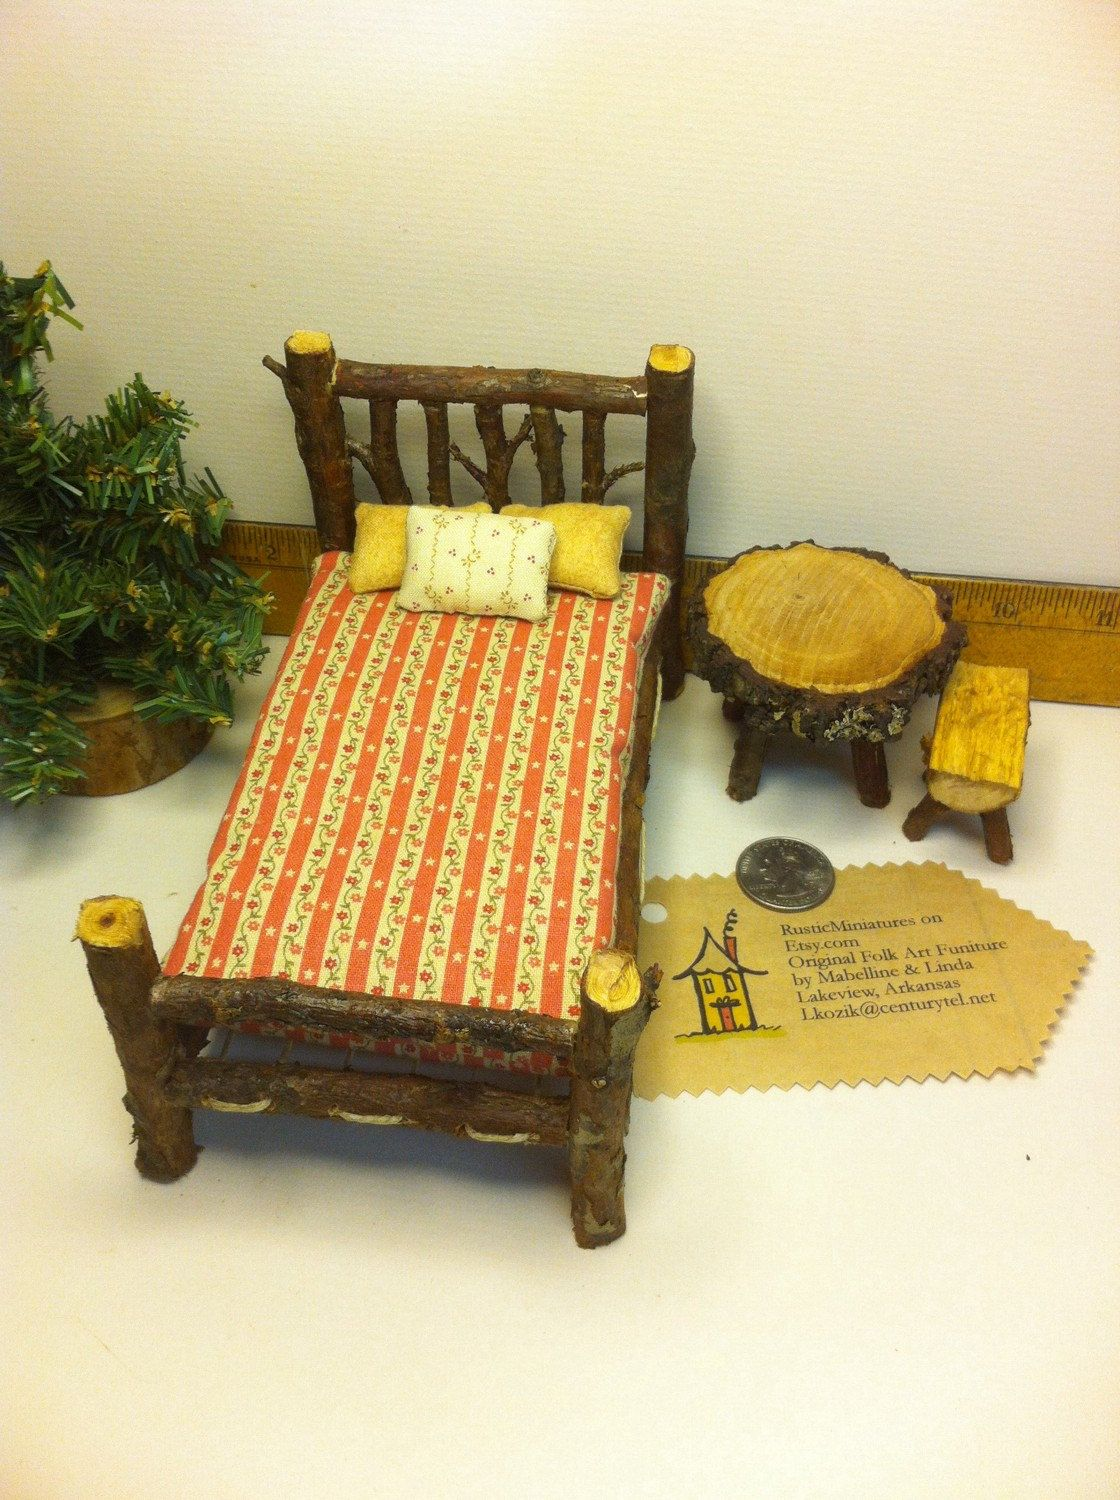 A personal favorite from my etsy shop rustic miniatures